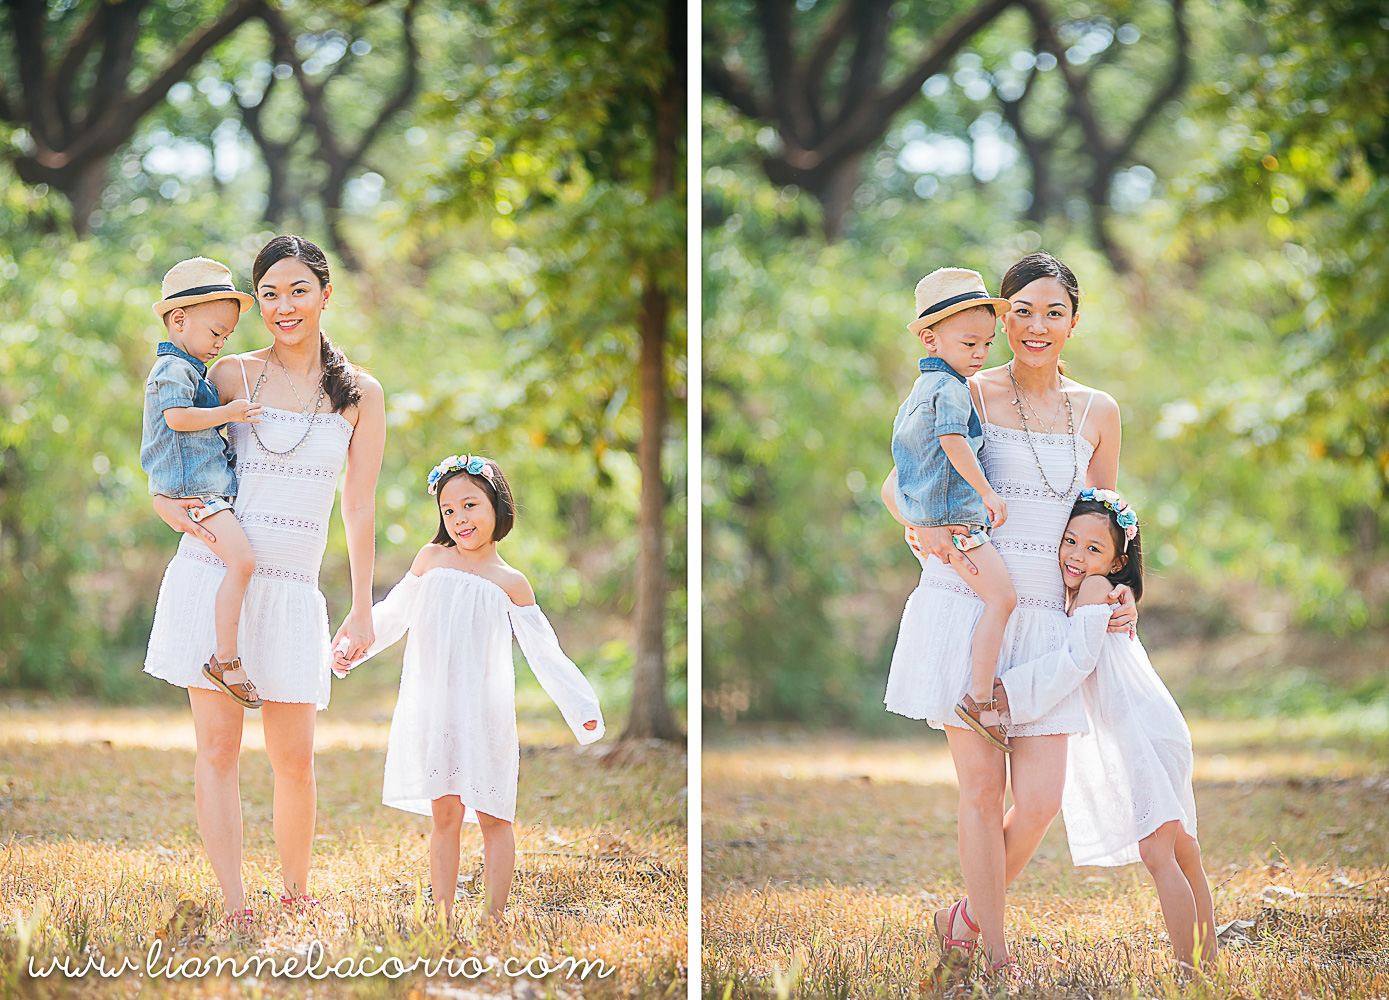 Geli Family - Lianne Bacorro Photography - Something Pretty Manila